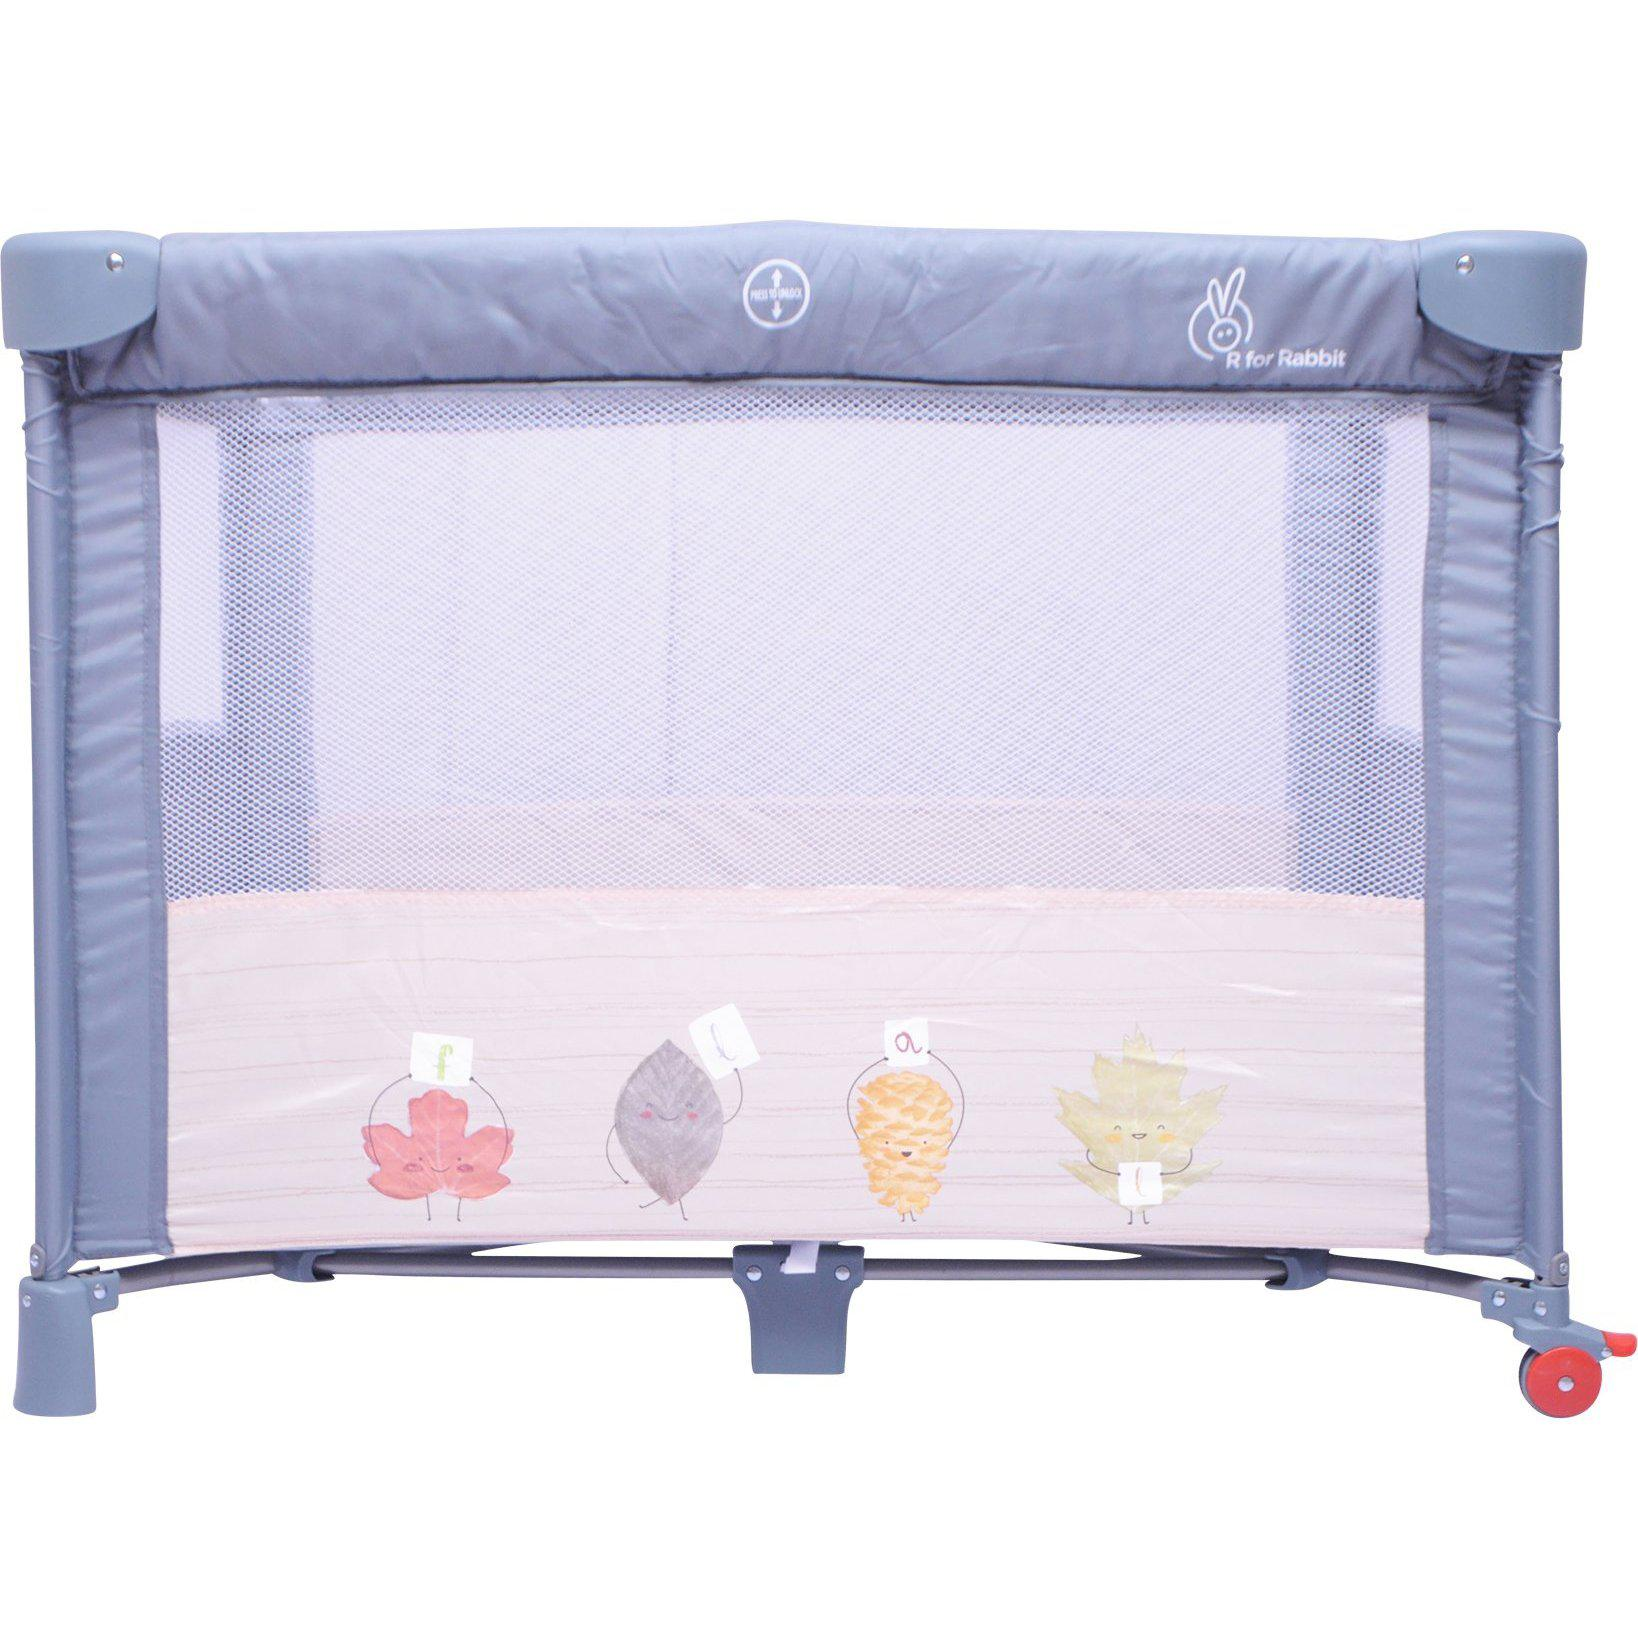 R for Rabbit Hide and Seek – Smart Folding Baby Bed cum Cot